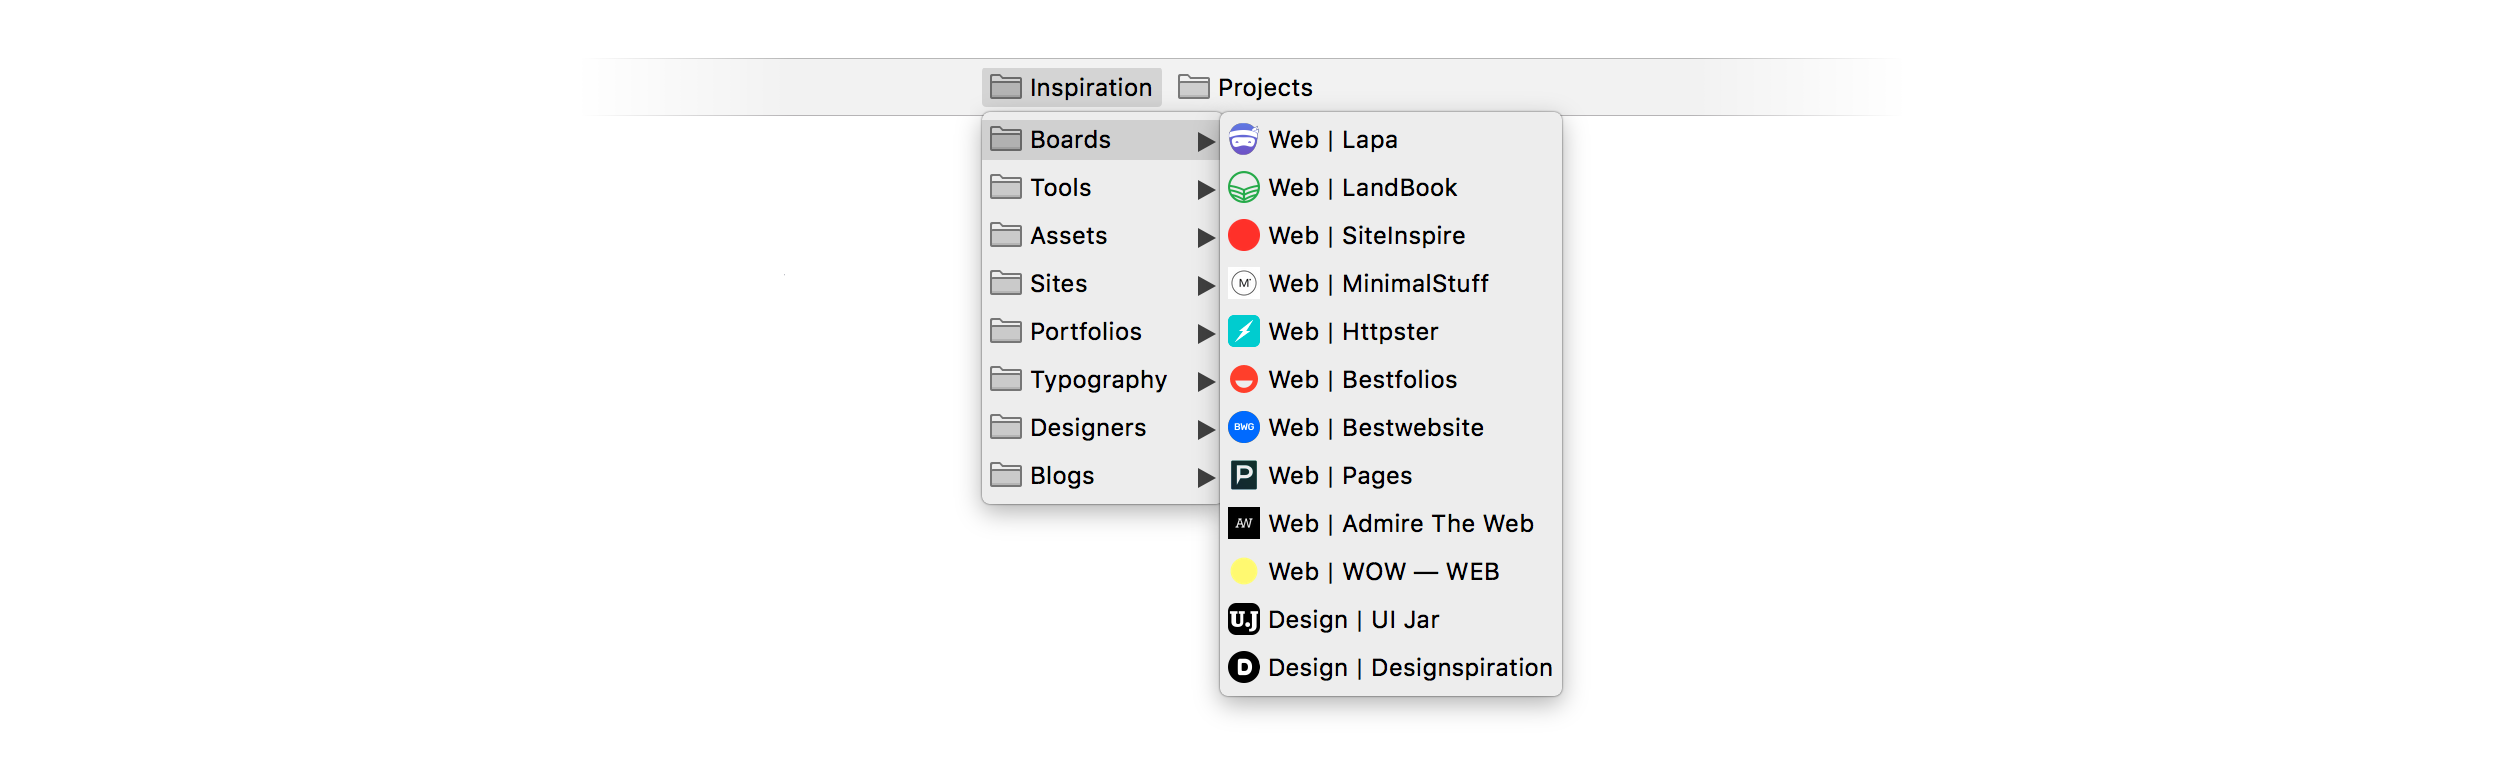 Organizing Inspiration and Resources - Prototypr